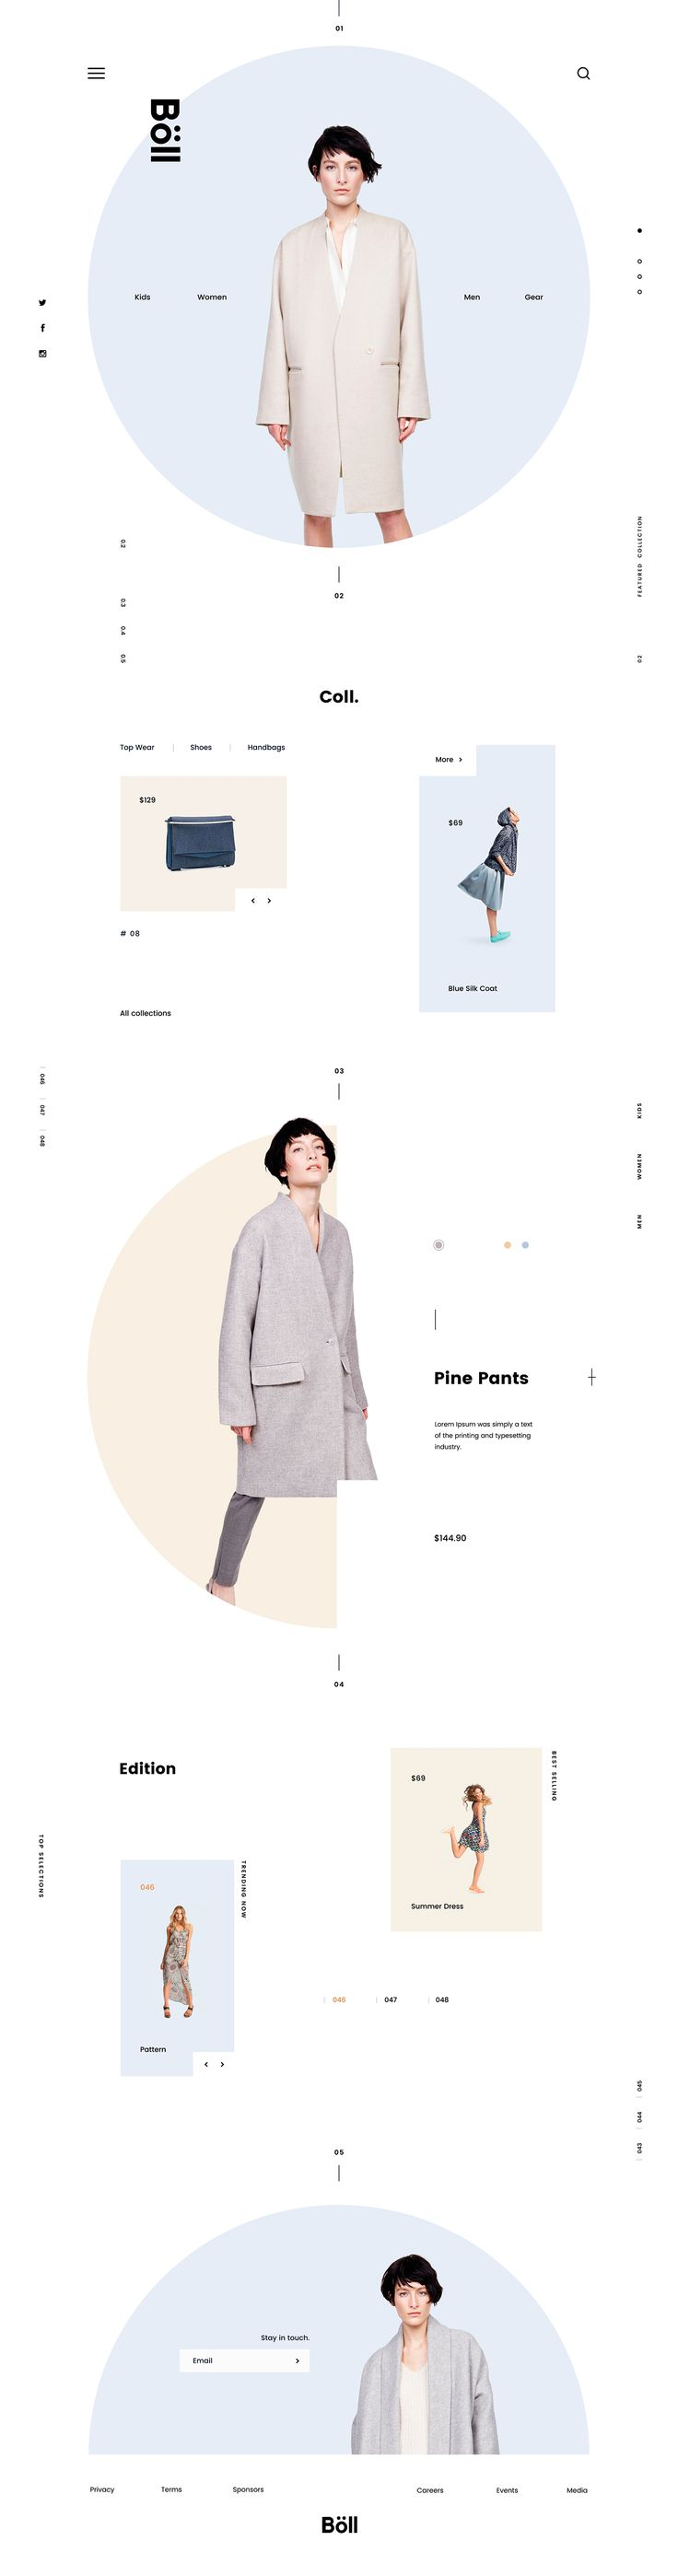 Böll Fashion E-commerce Website on Behance